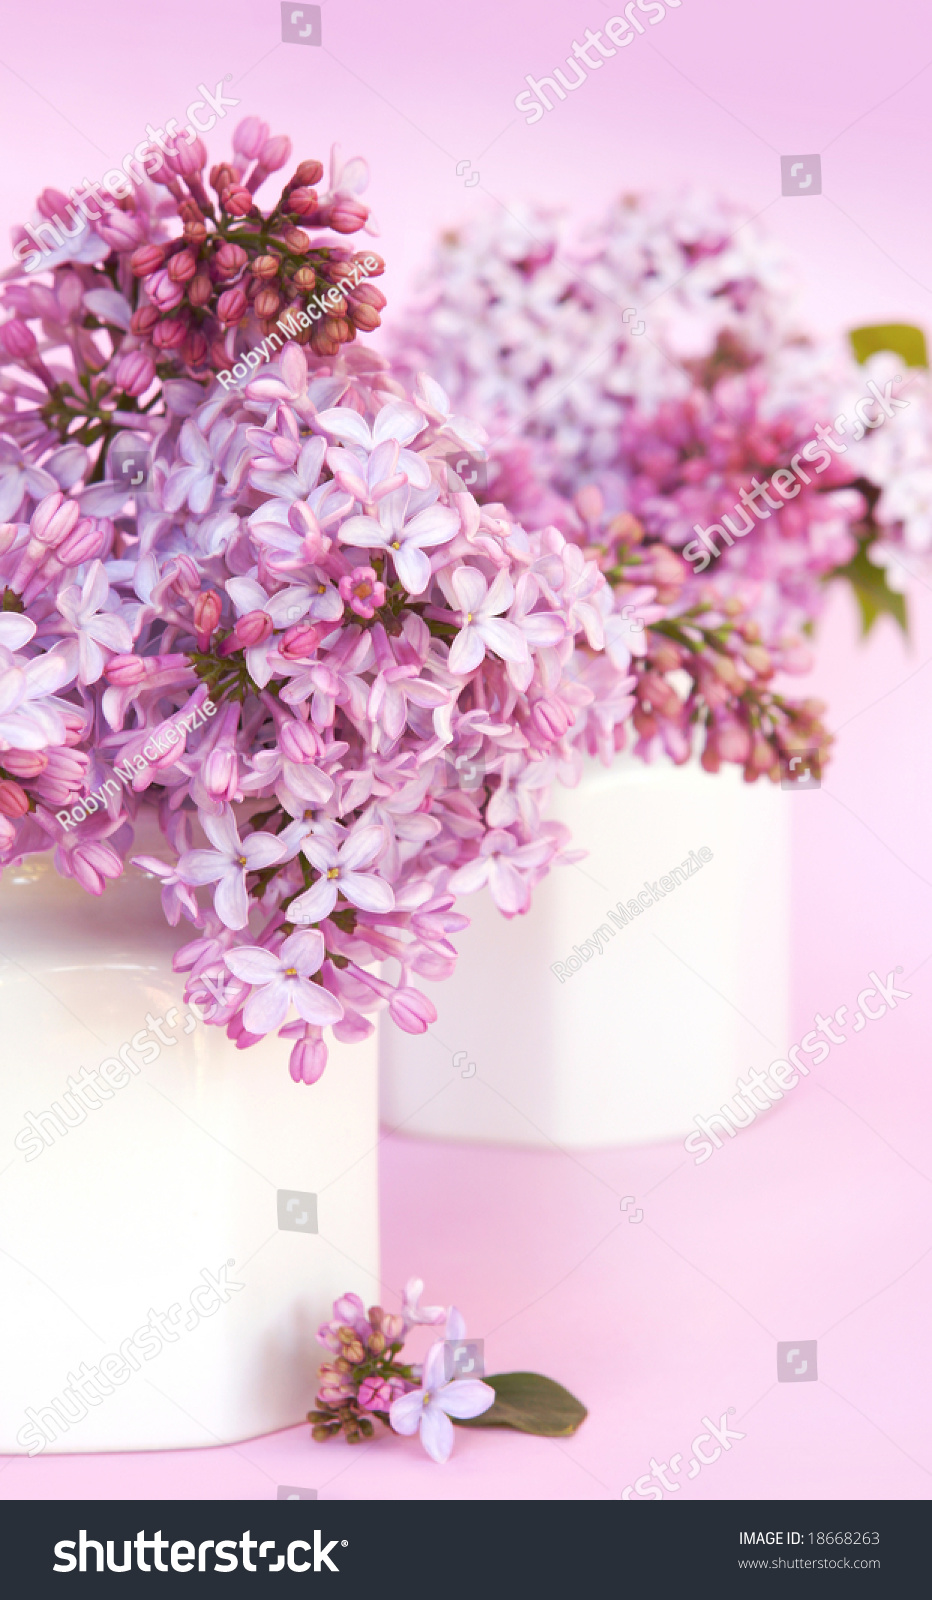 Gorgeous lilac blooms small white vases stock photo 18668263 gorgeous lilac blooms in small white vases soft focus with focus on front flowers reviewsmspy